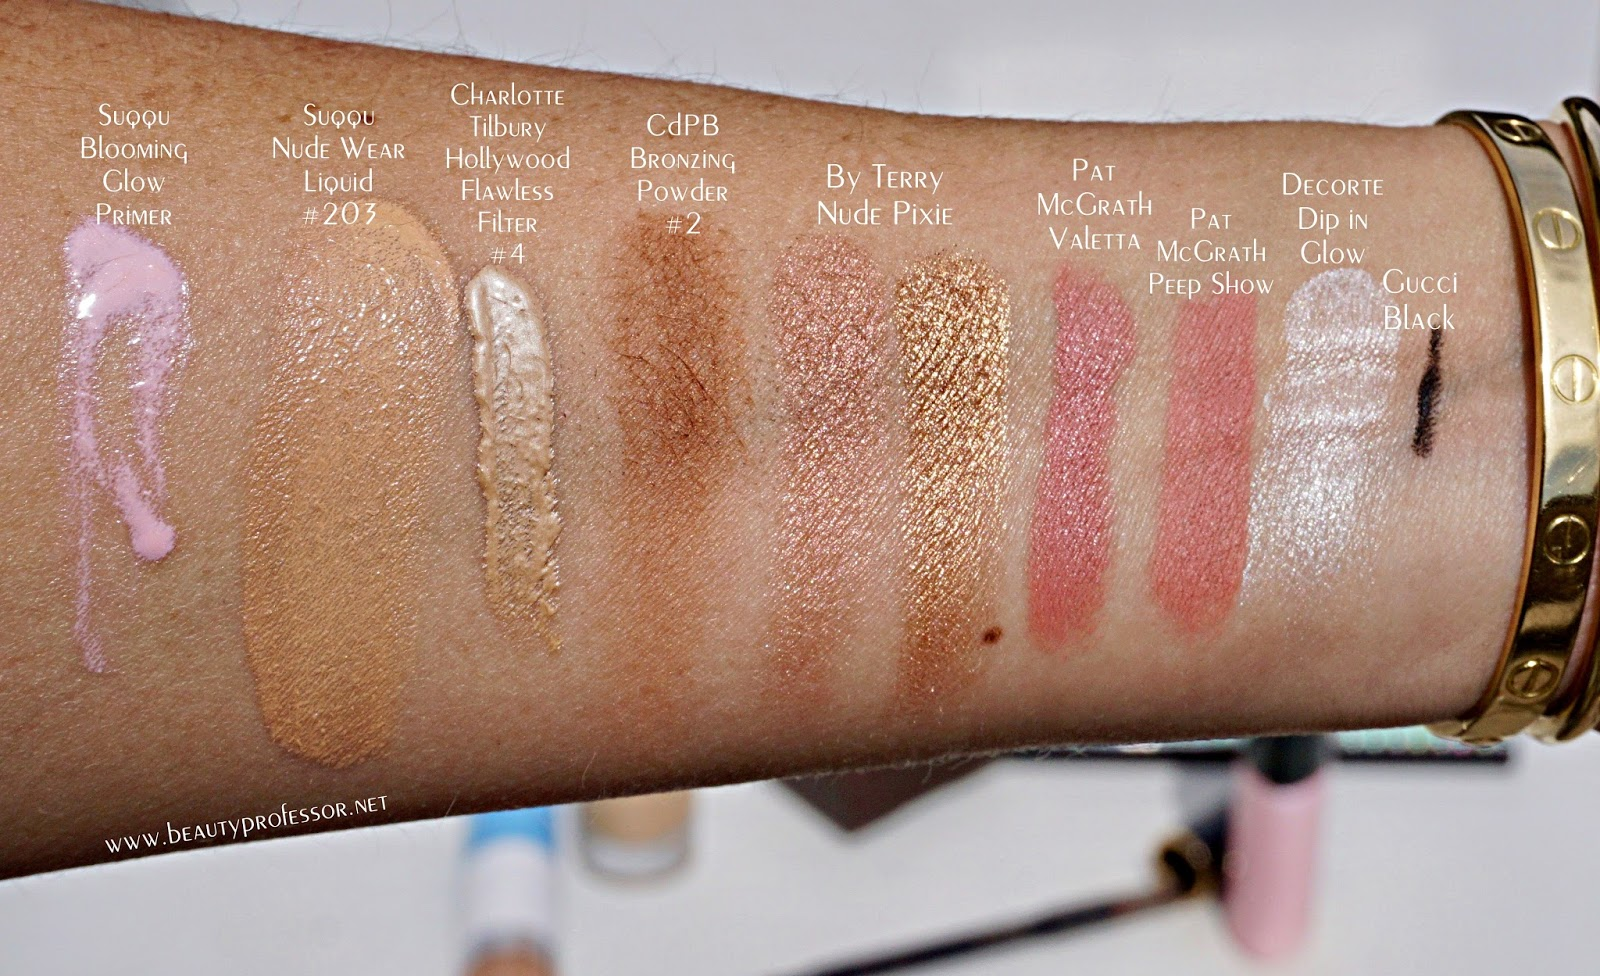 suqqu nude wear drops foundation swatches